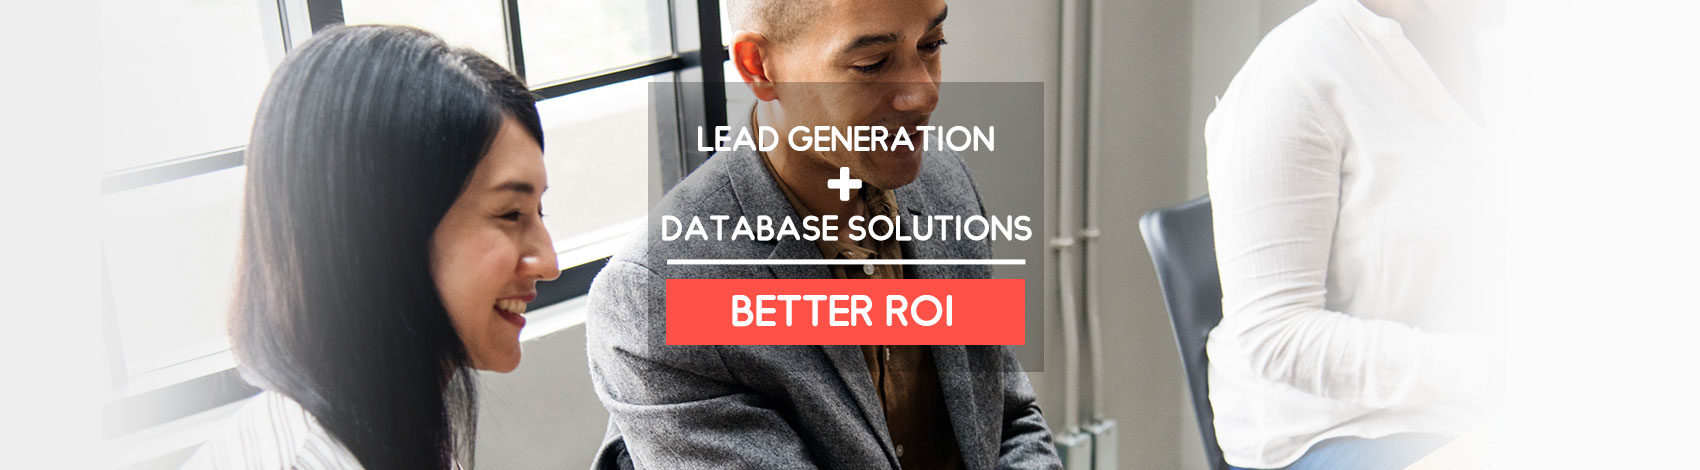 Lead Generation + Database Solutions = Better ROI